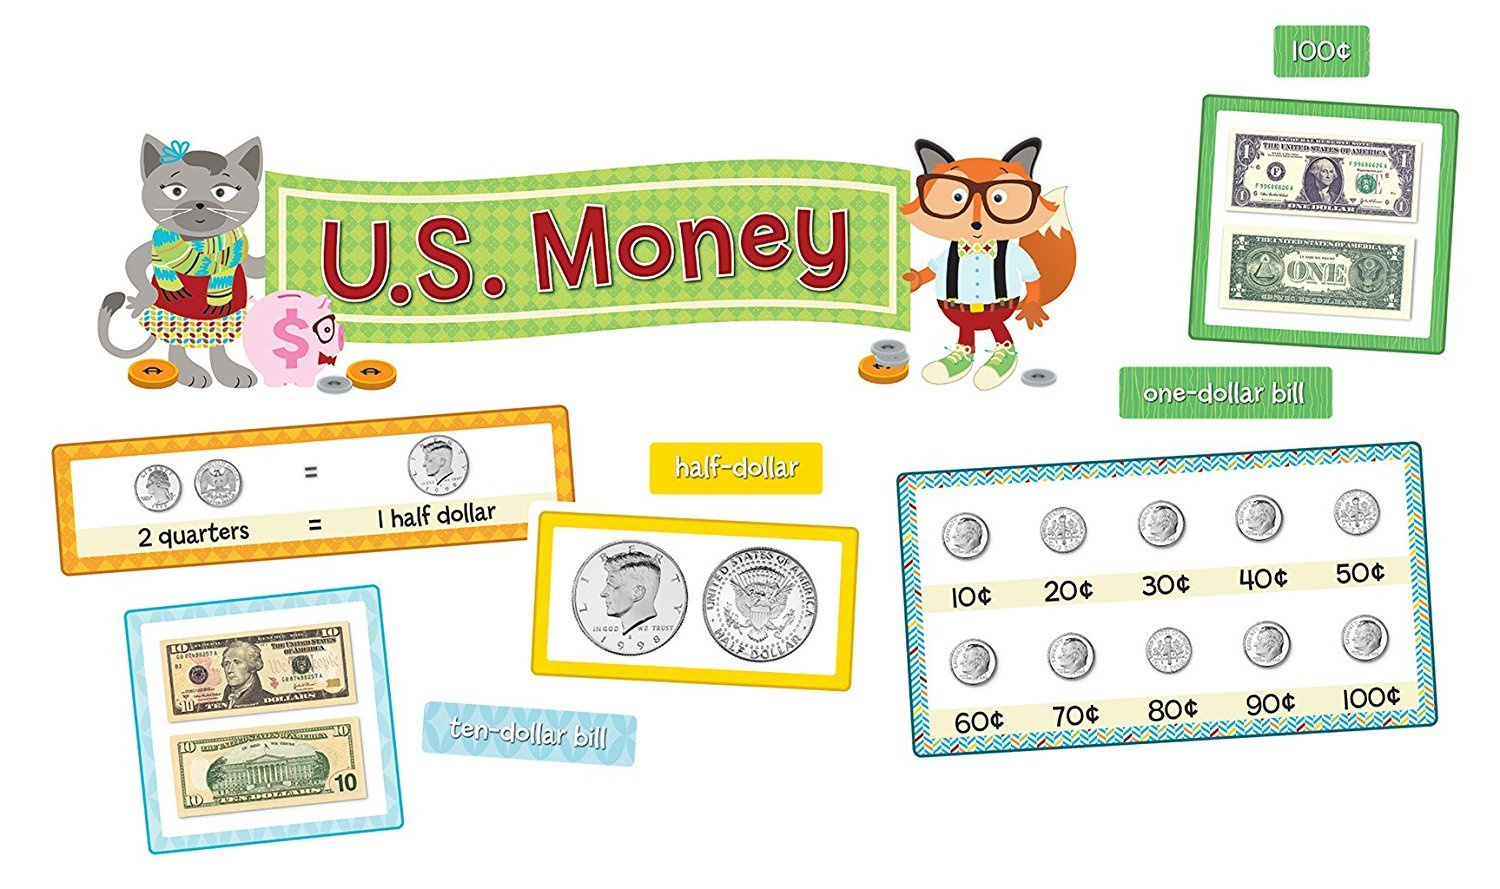 CD 110340 U.S. MONEY MINI BBS